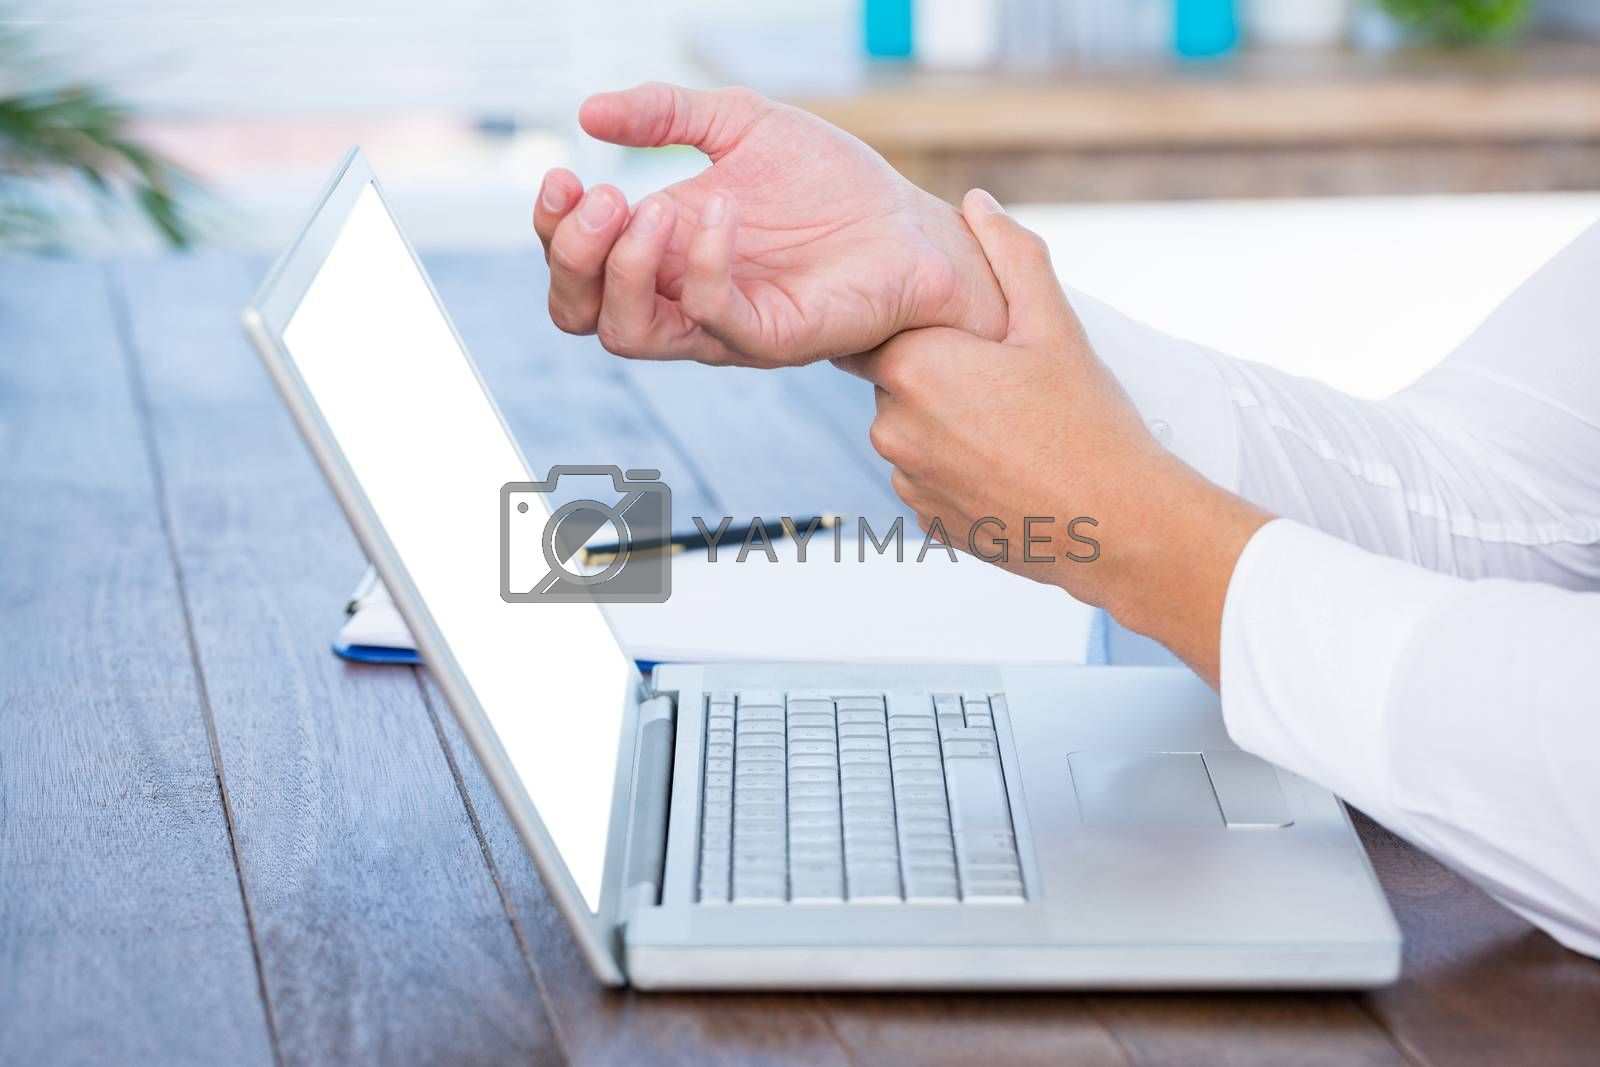 Royalty free image of Close up view of man massaging his wrist by Wavebreakmedia